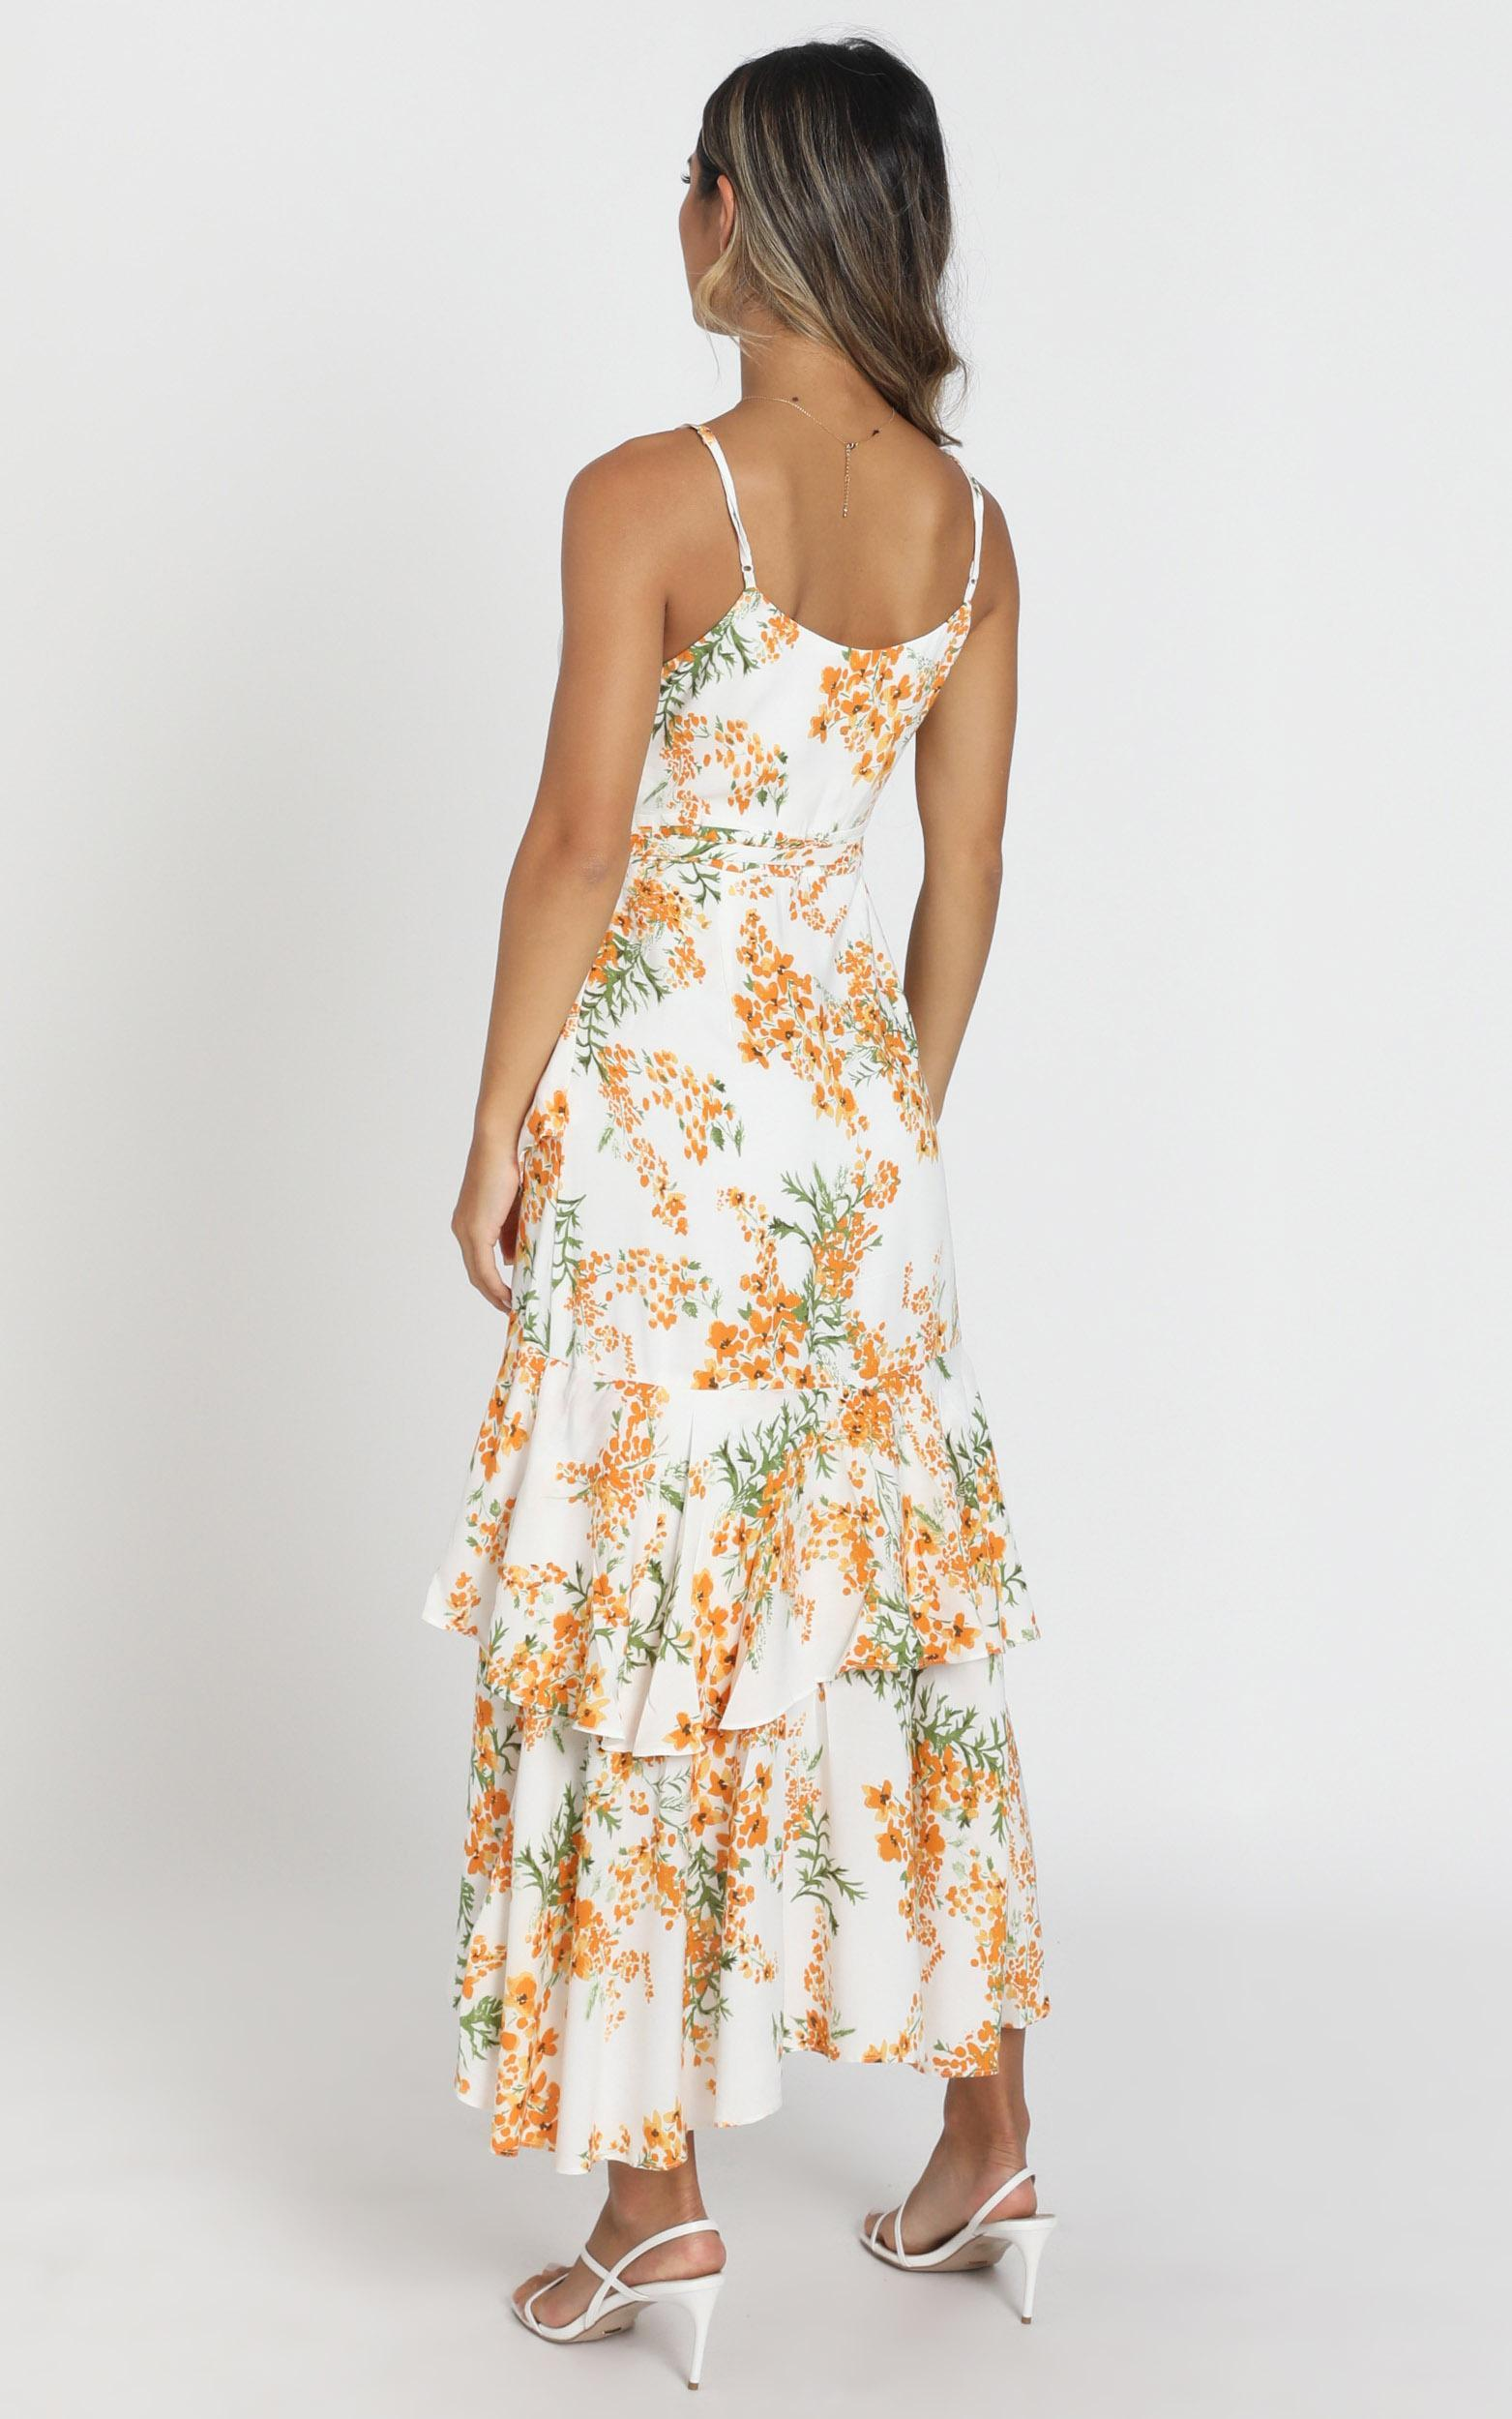 Jaclyn Wrap Midi Dress in white floral - 6 (XS), White, hi-res image number null